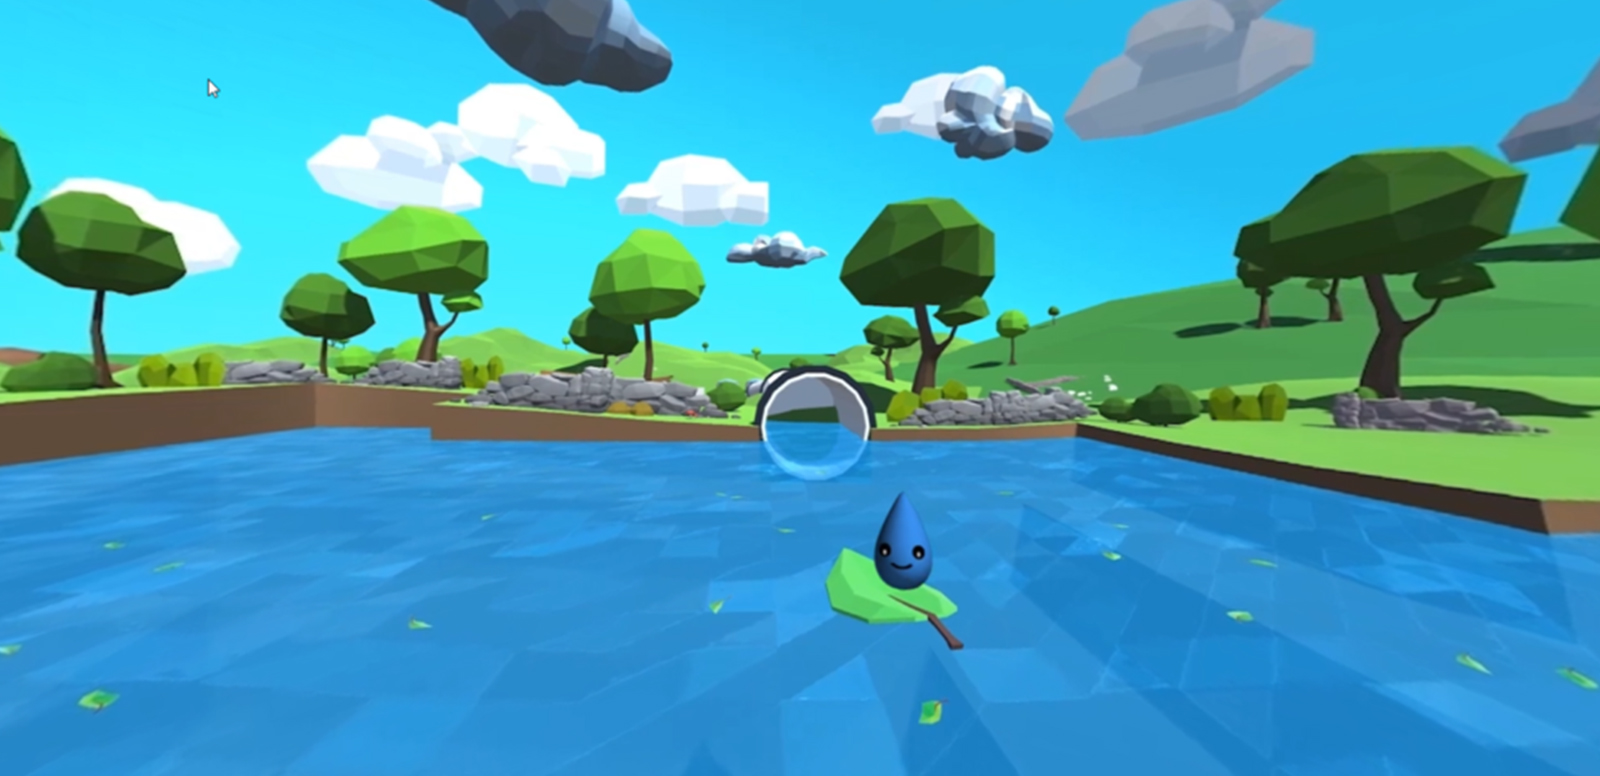 Severn Trent celebrates water with VR roadshow for kids